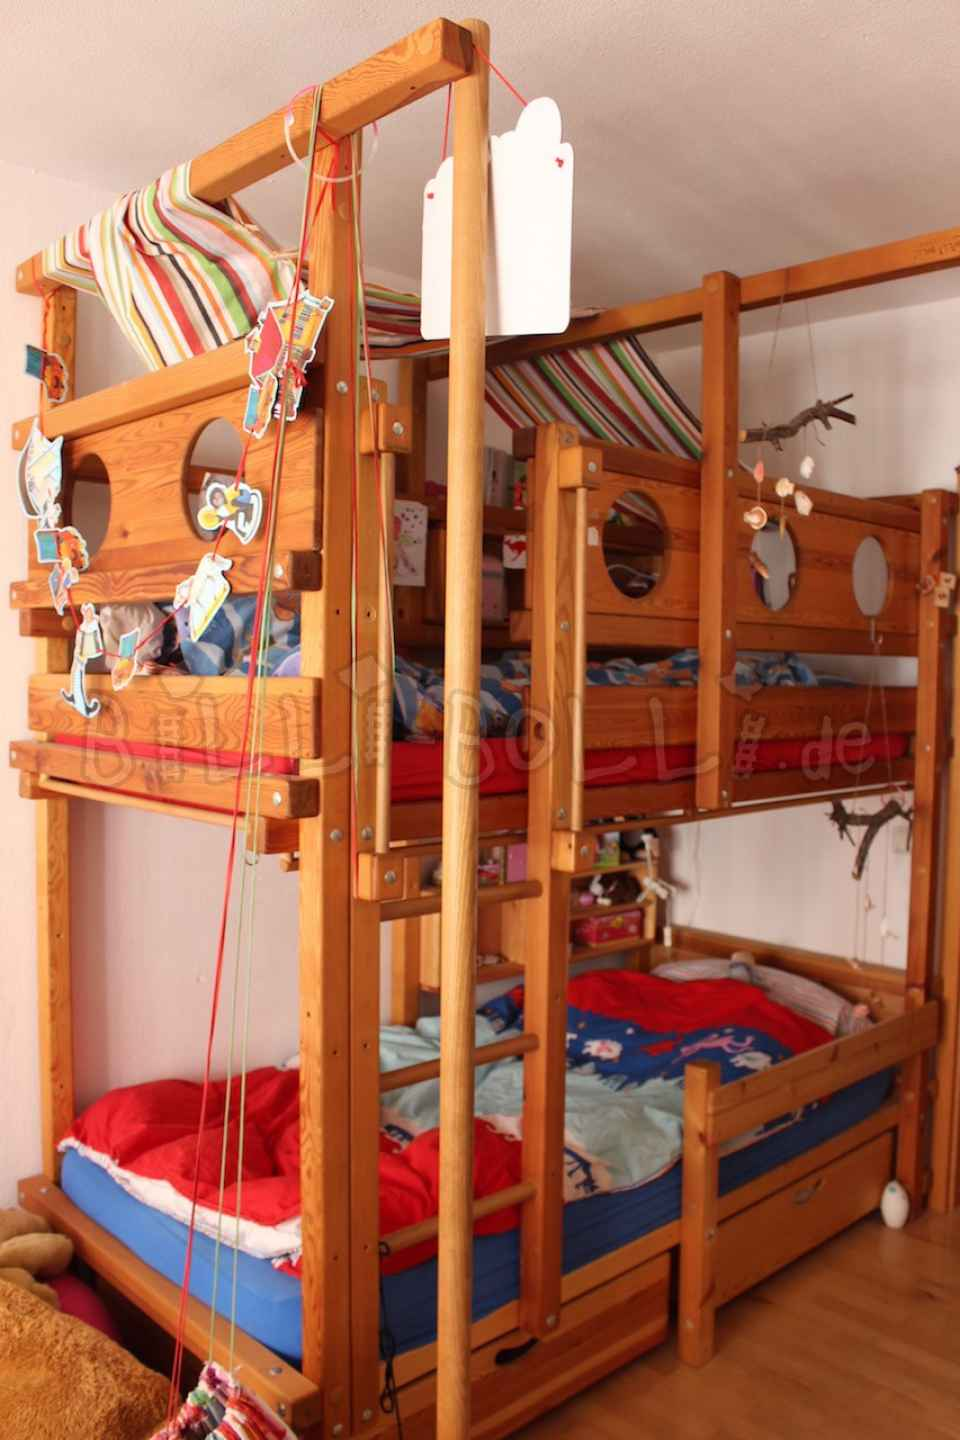 Bunk bed 90 x 200 cm, pine oil-waxed (second hand loft bed)